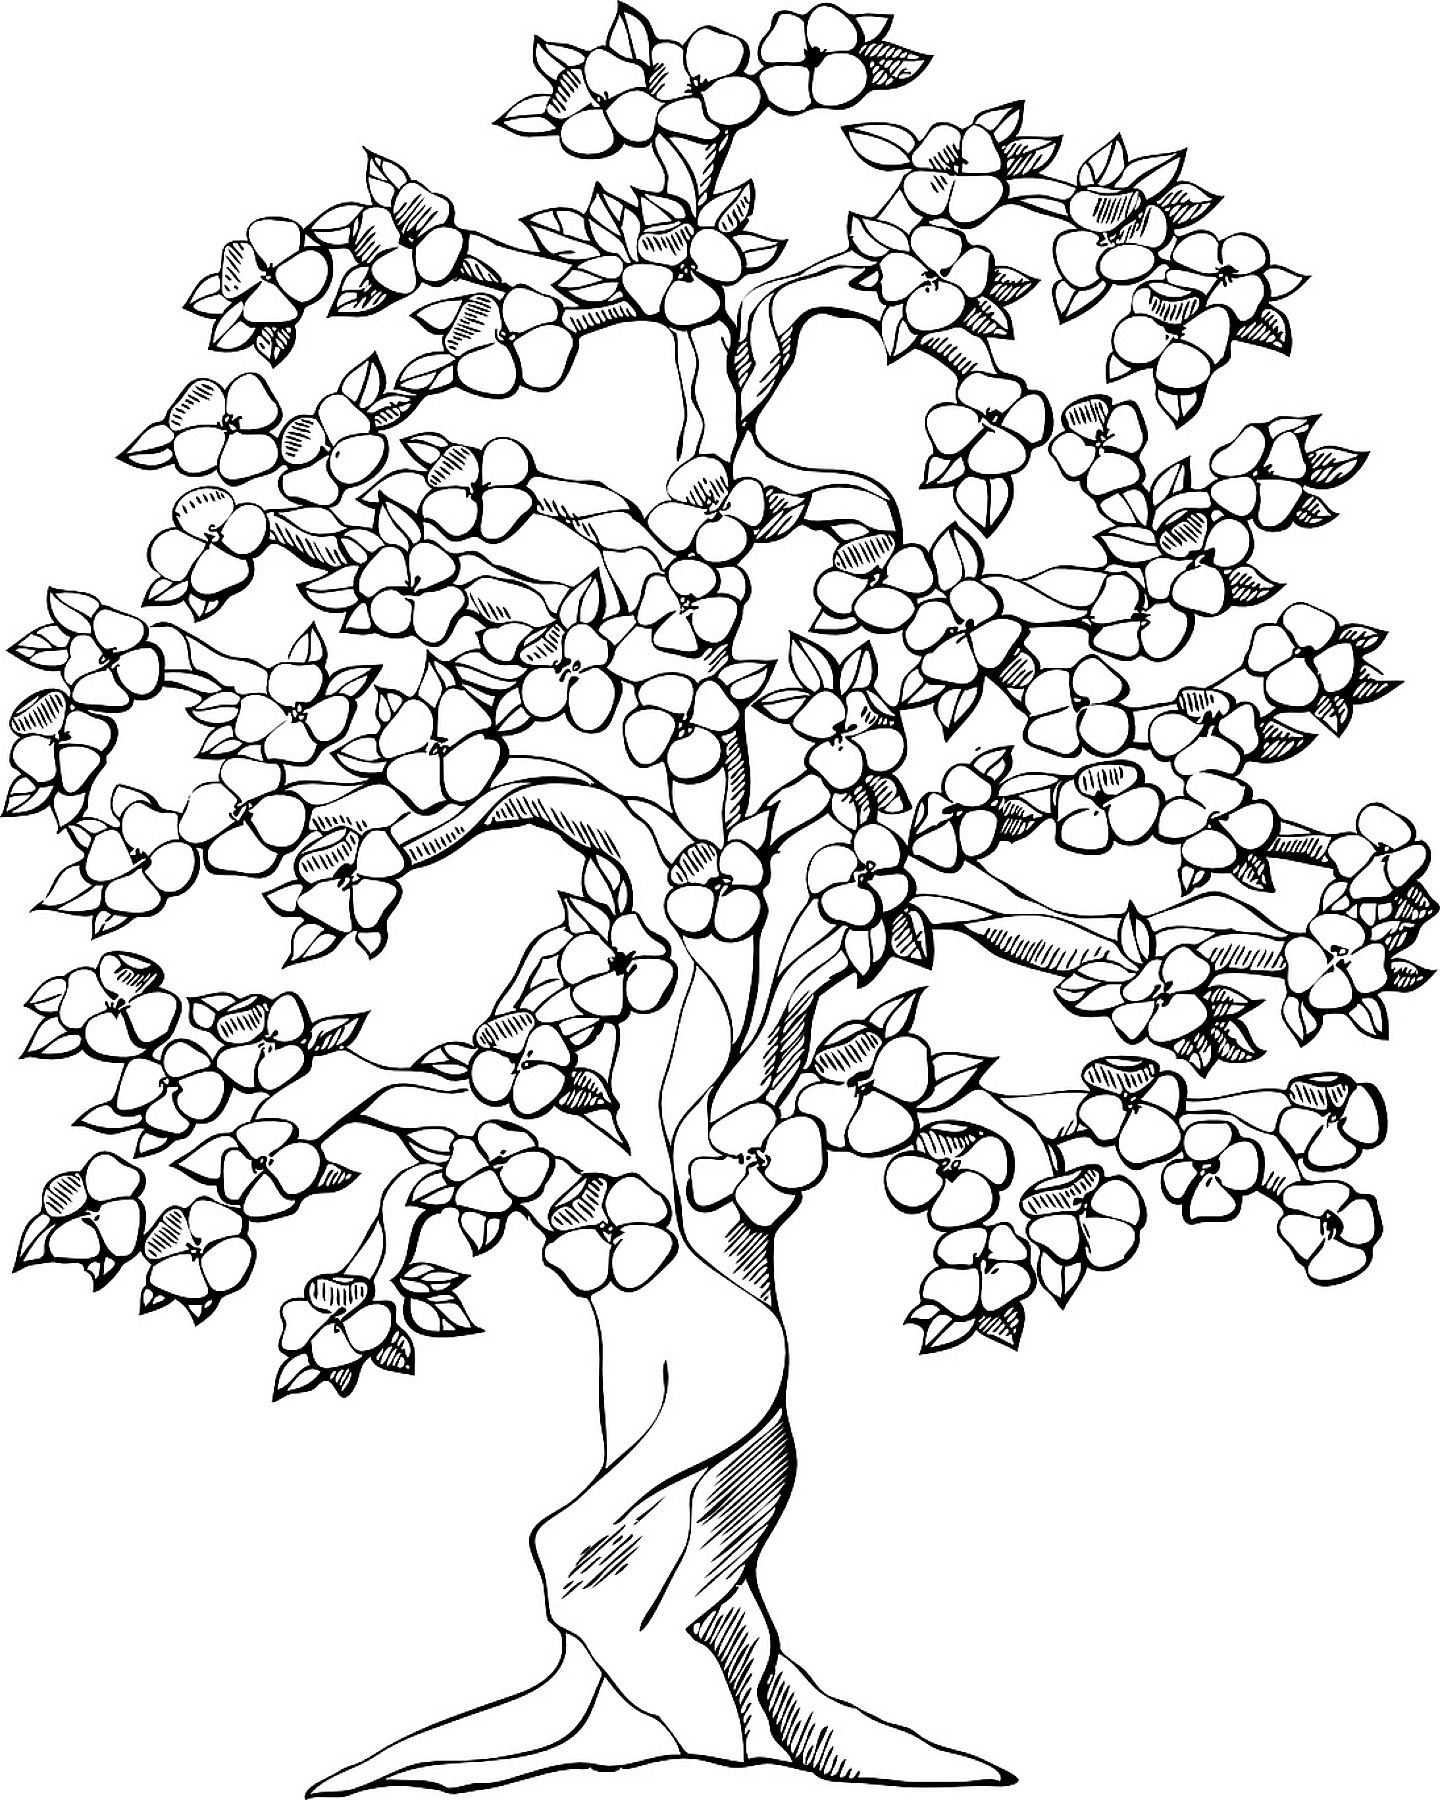 1440x1800 Apple Tree Coloring Pages Ebcs Printable Free Trees Of Adults Palm